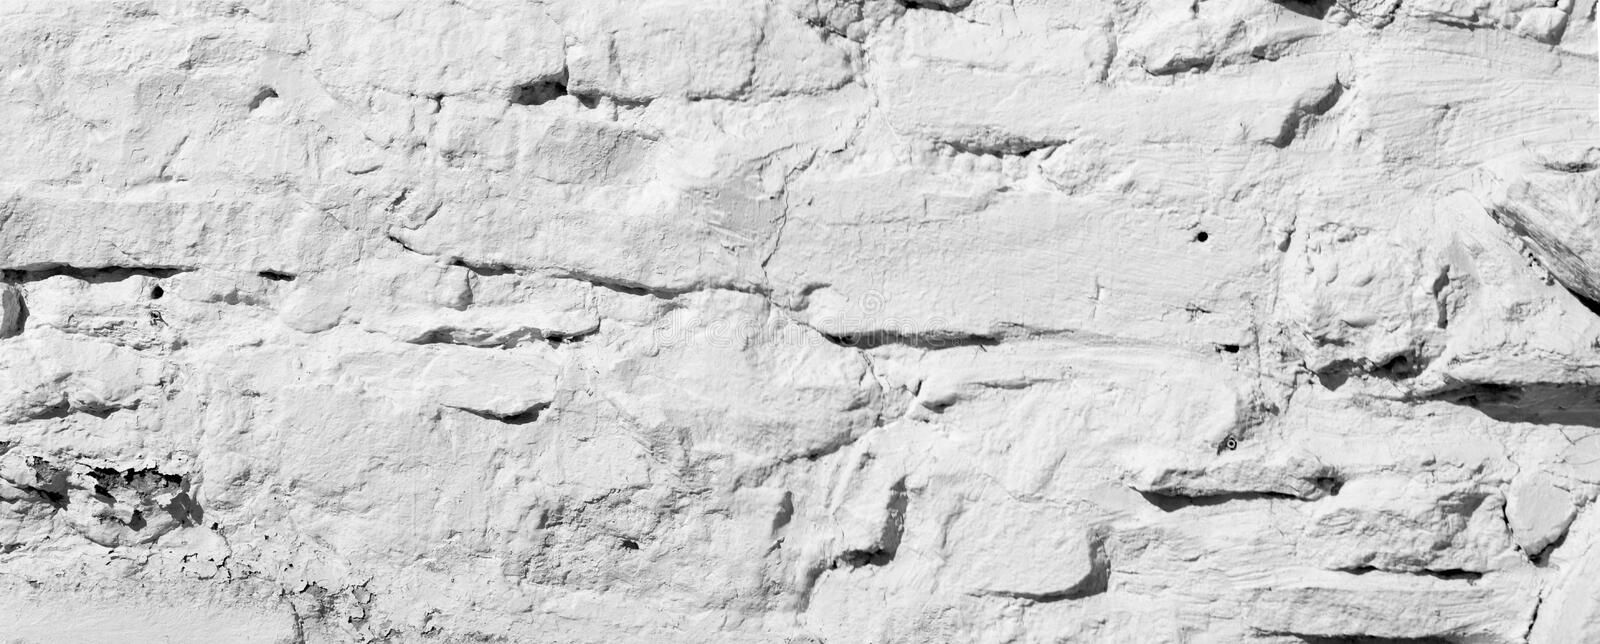 Texture background, pattern. The wall is lined with granite stones and whitewashed with lime. a continuous vertical brick or stone royalty free stock images